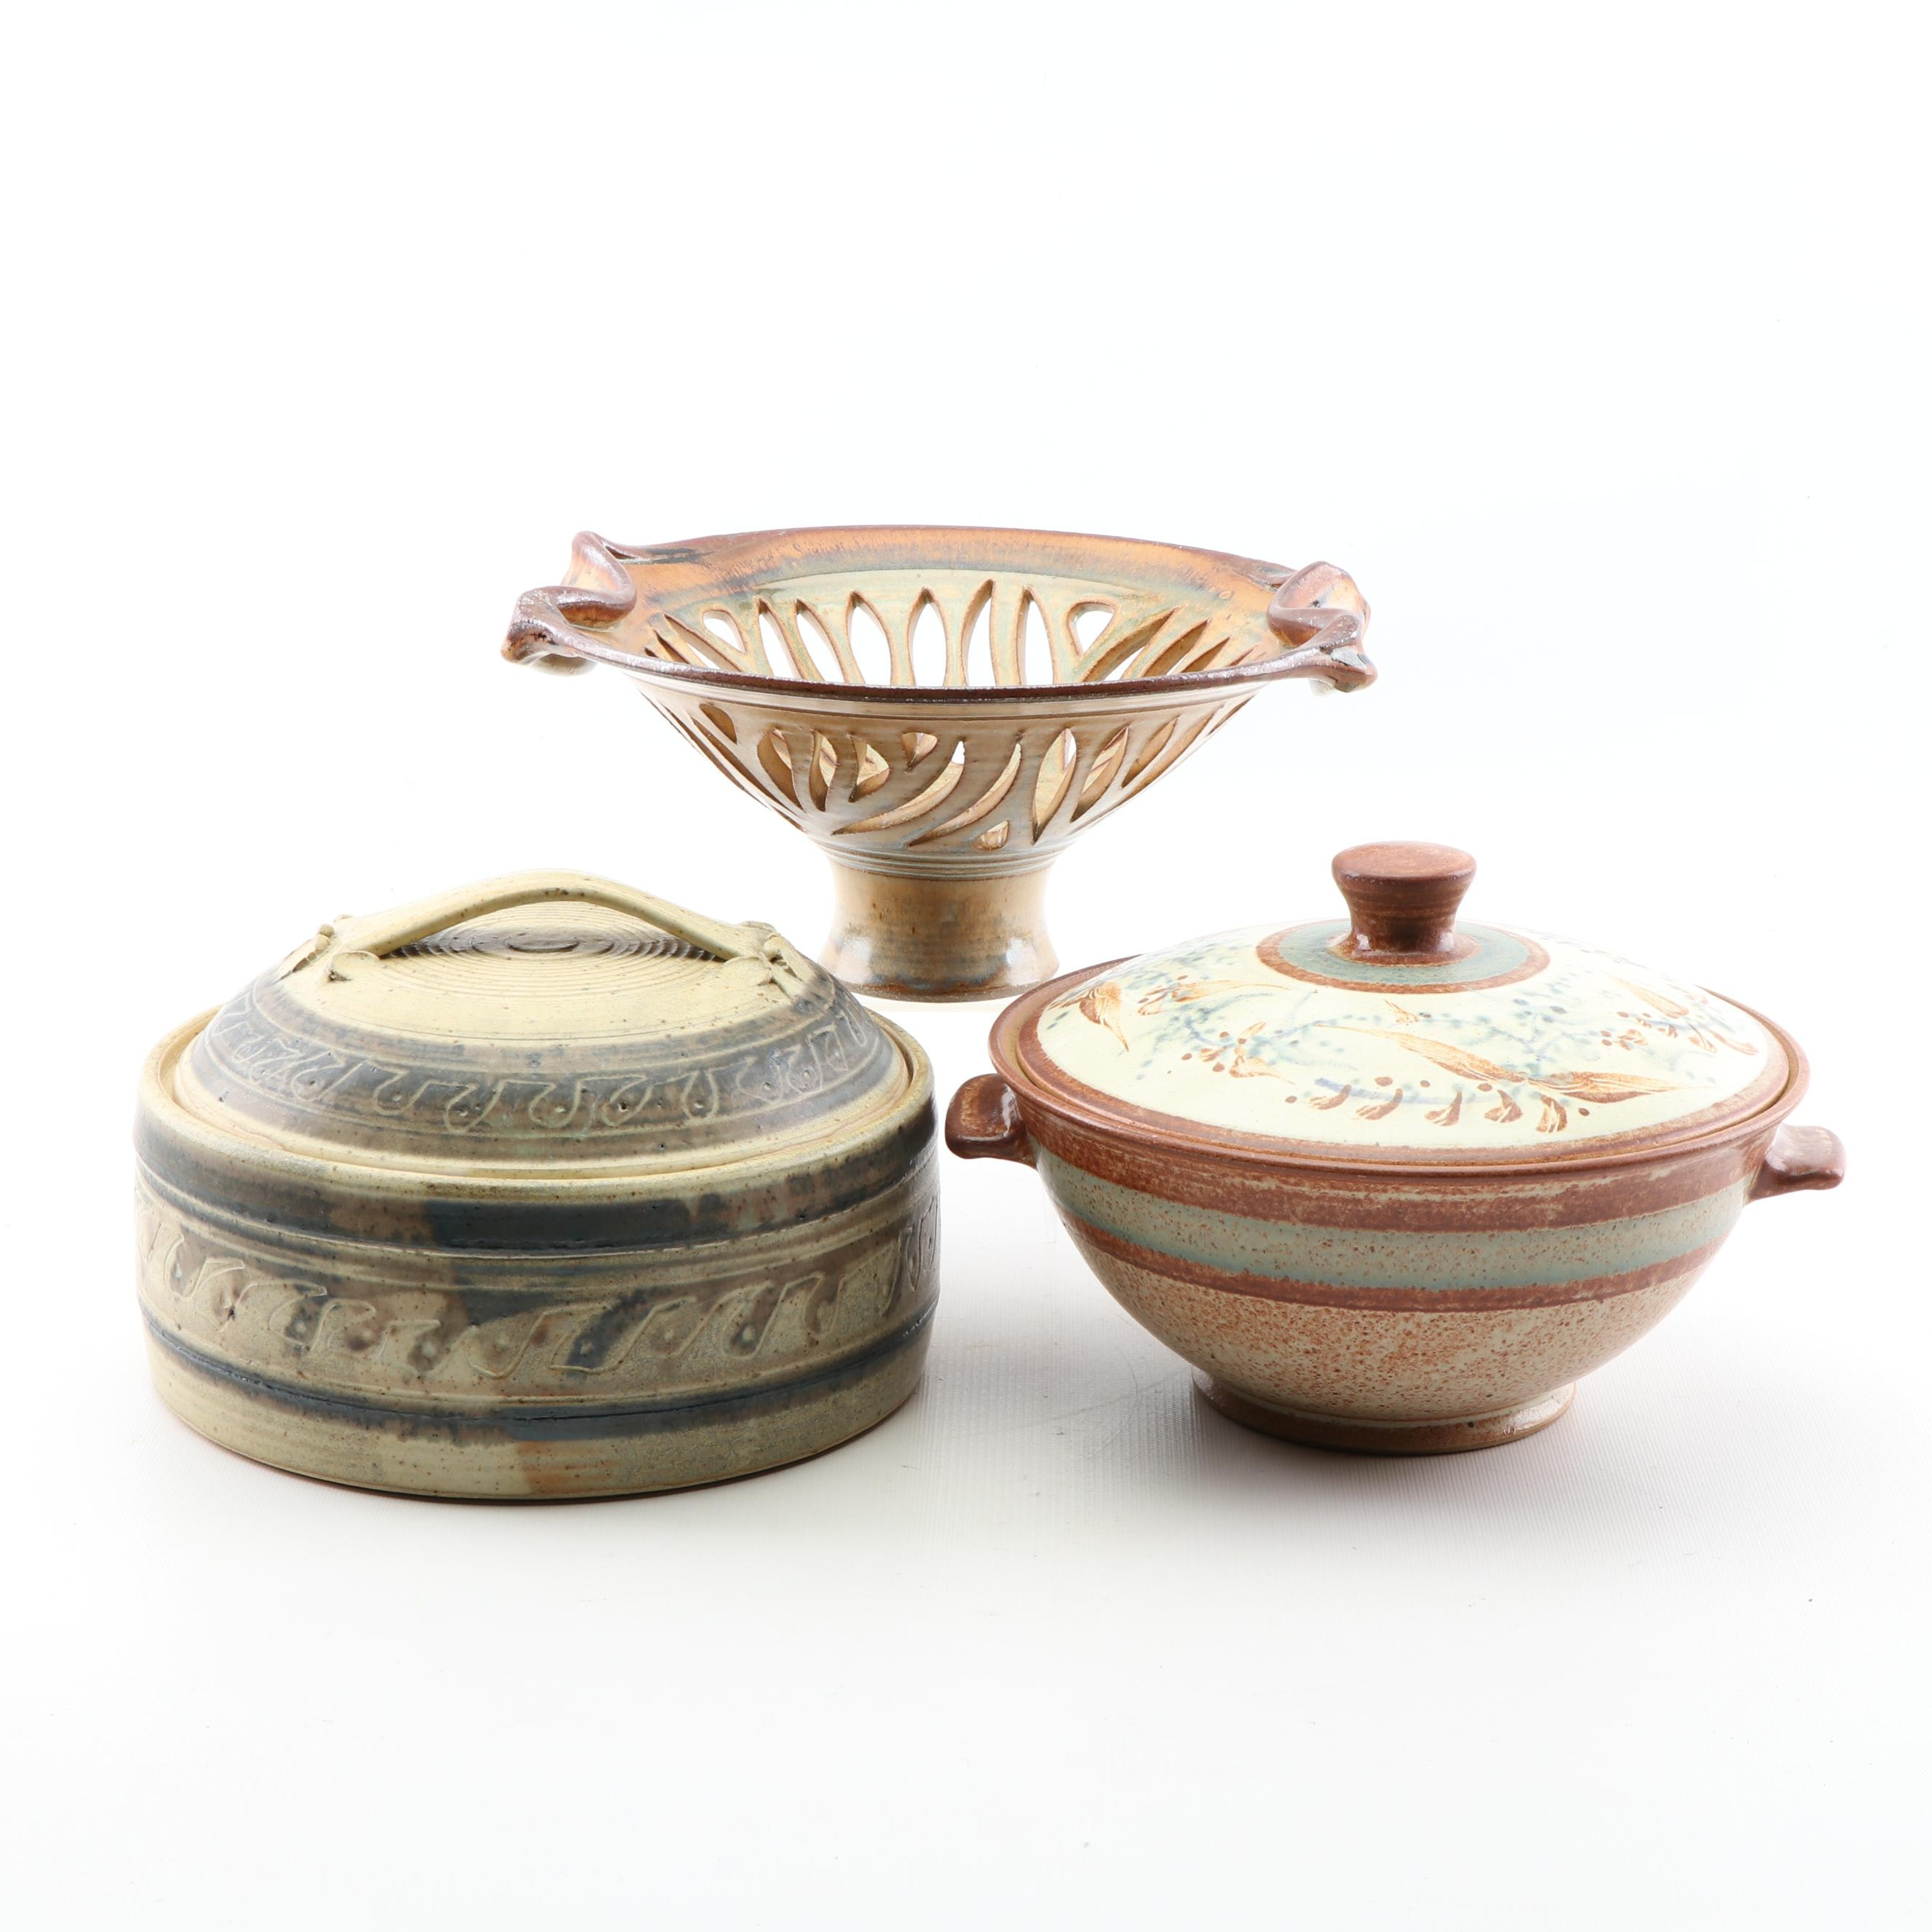 Wheel Thrown Reticulated and Covered Stoneware Serveware